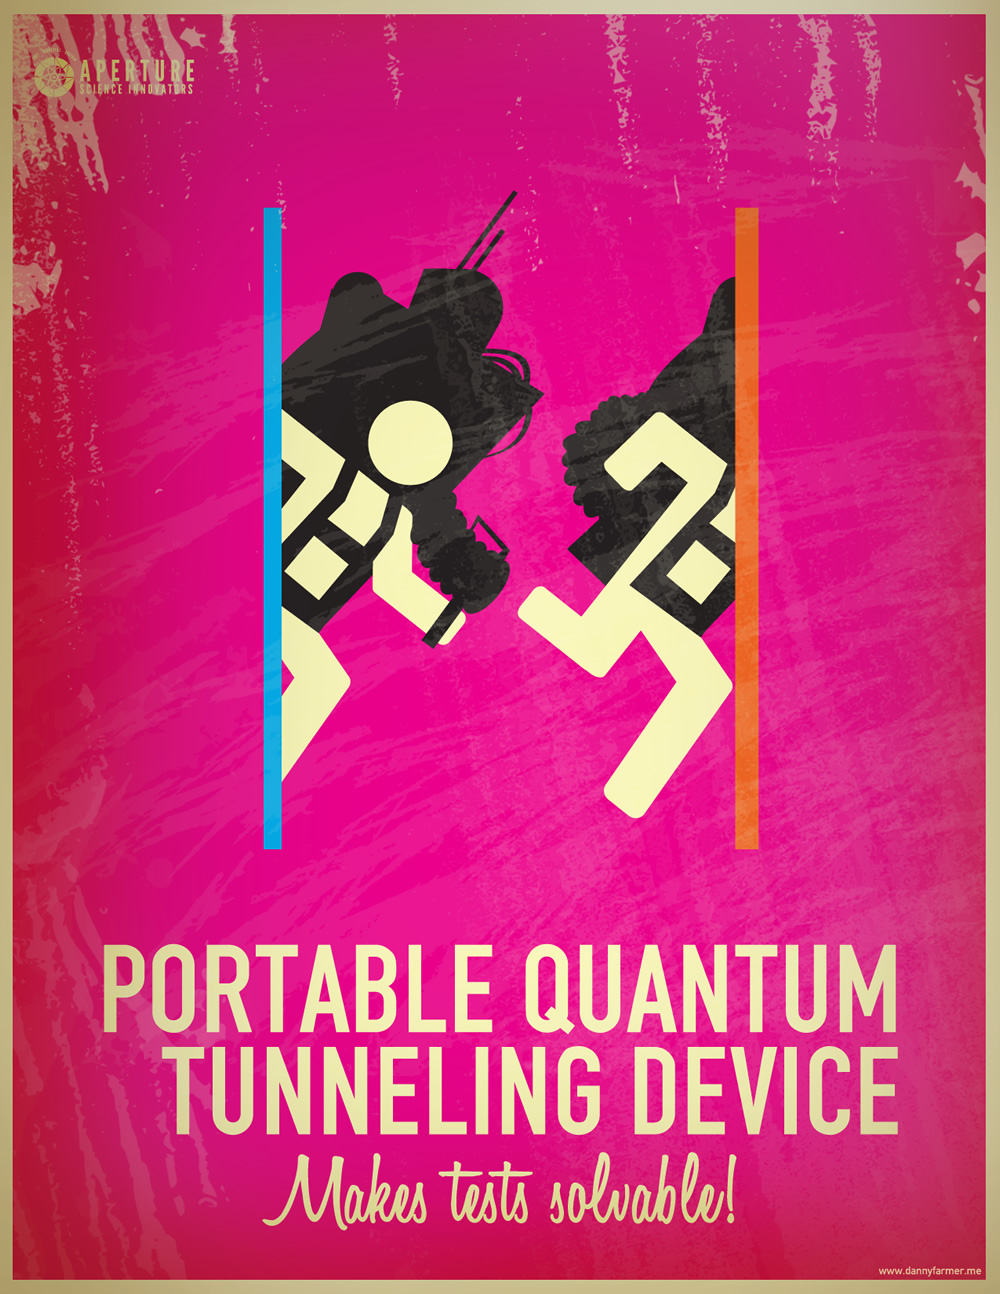 Portal 2 Portal Quantum tunneling Device makes tests solvable